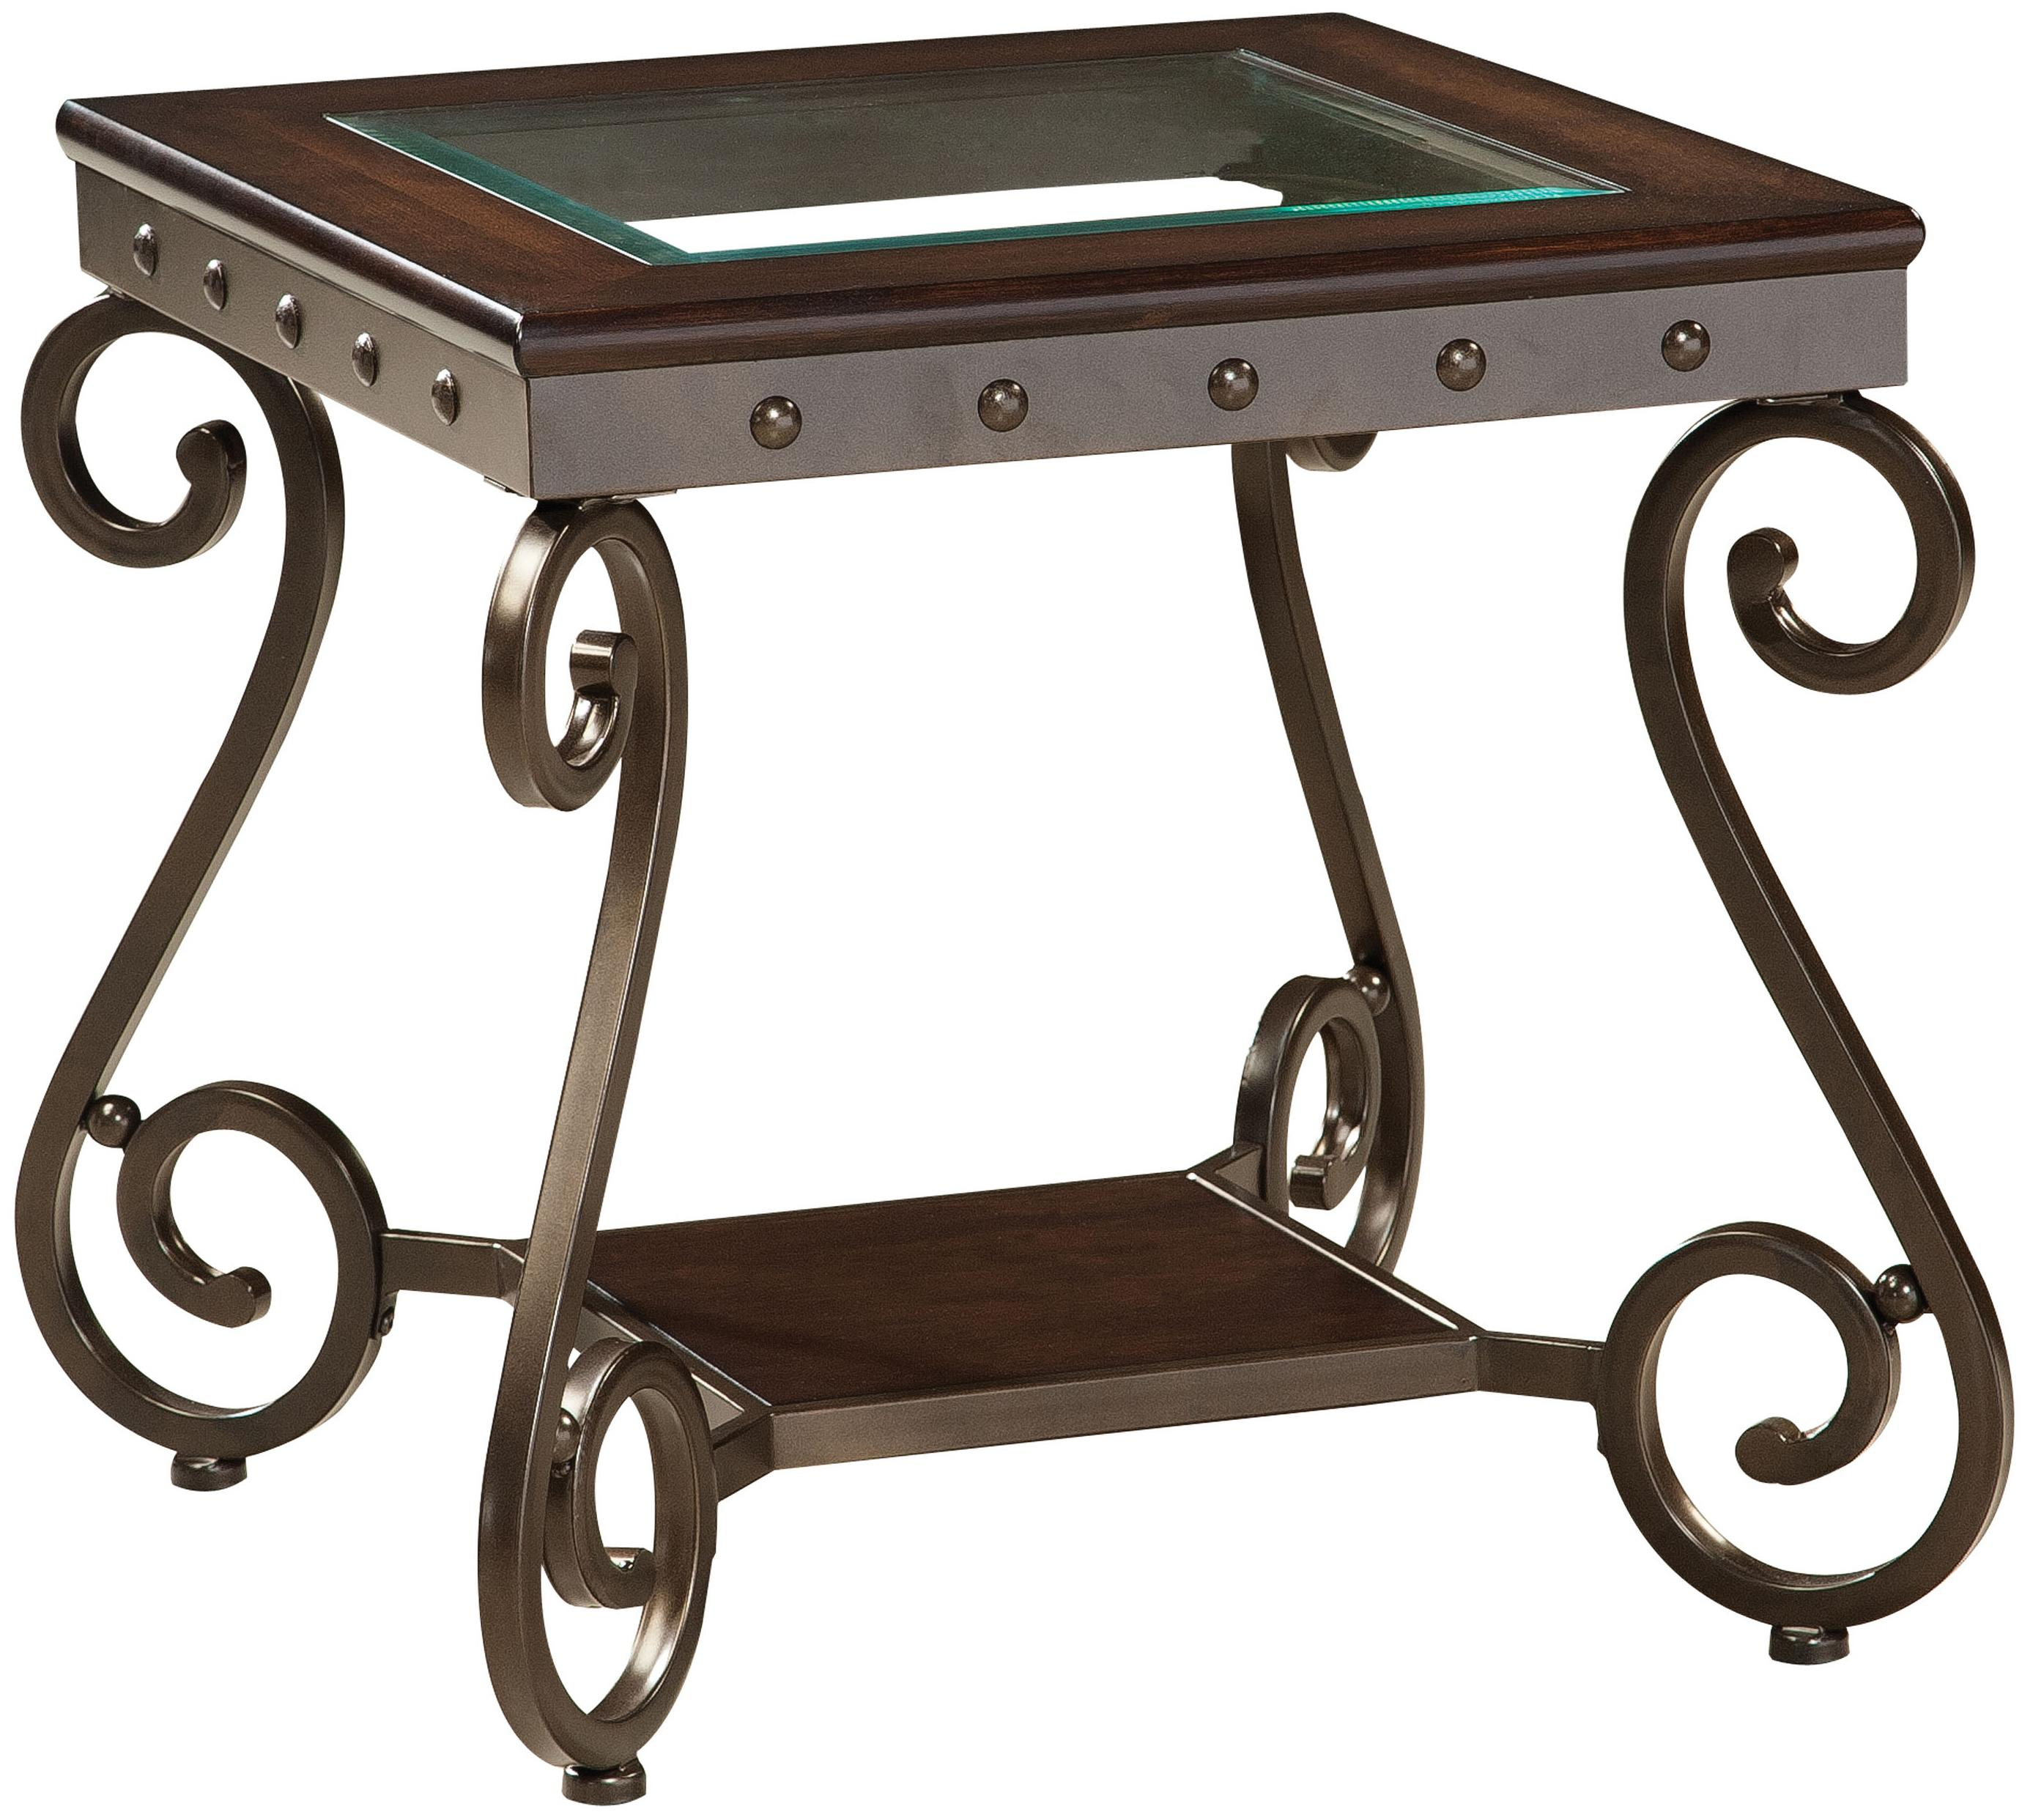 Standard Furniture Saratoga Cocktail Table and 2 End Tables Set with Shelf and Vintage Ironwork ...